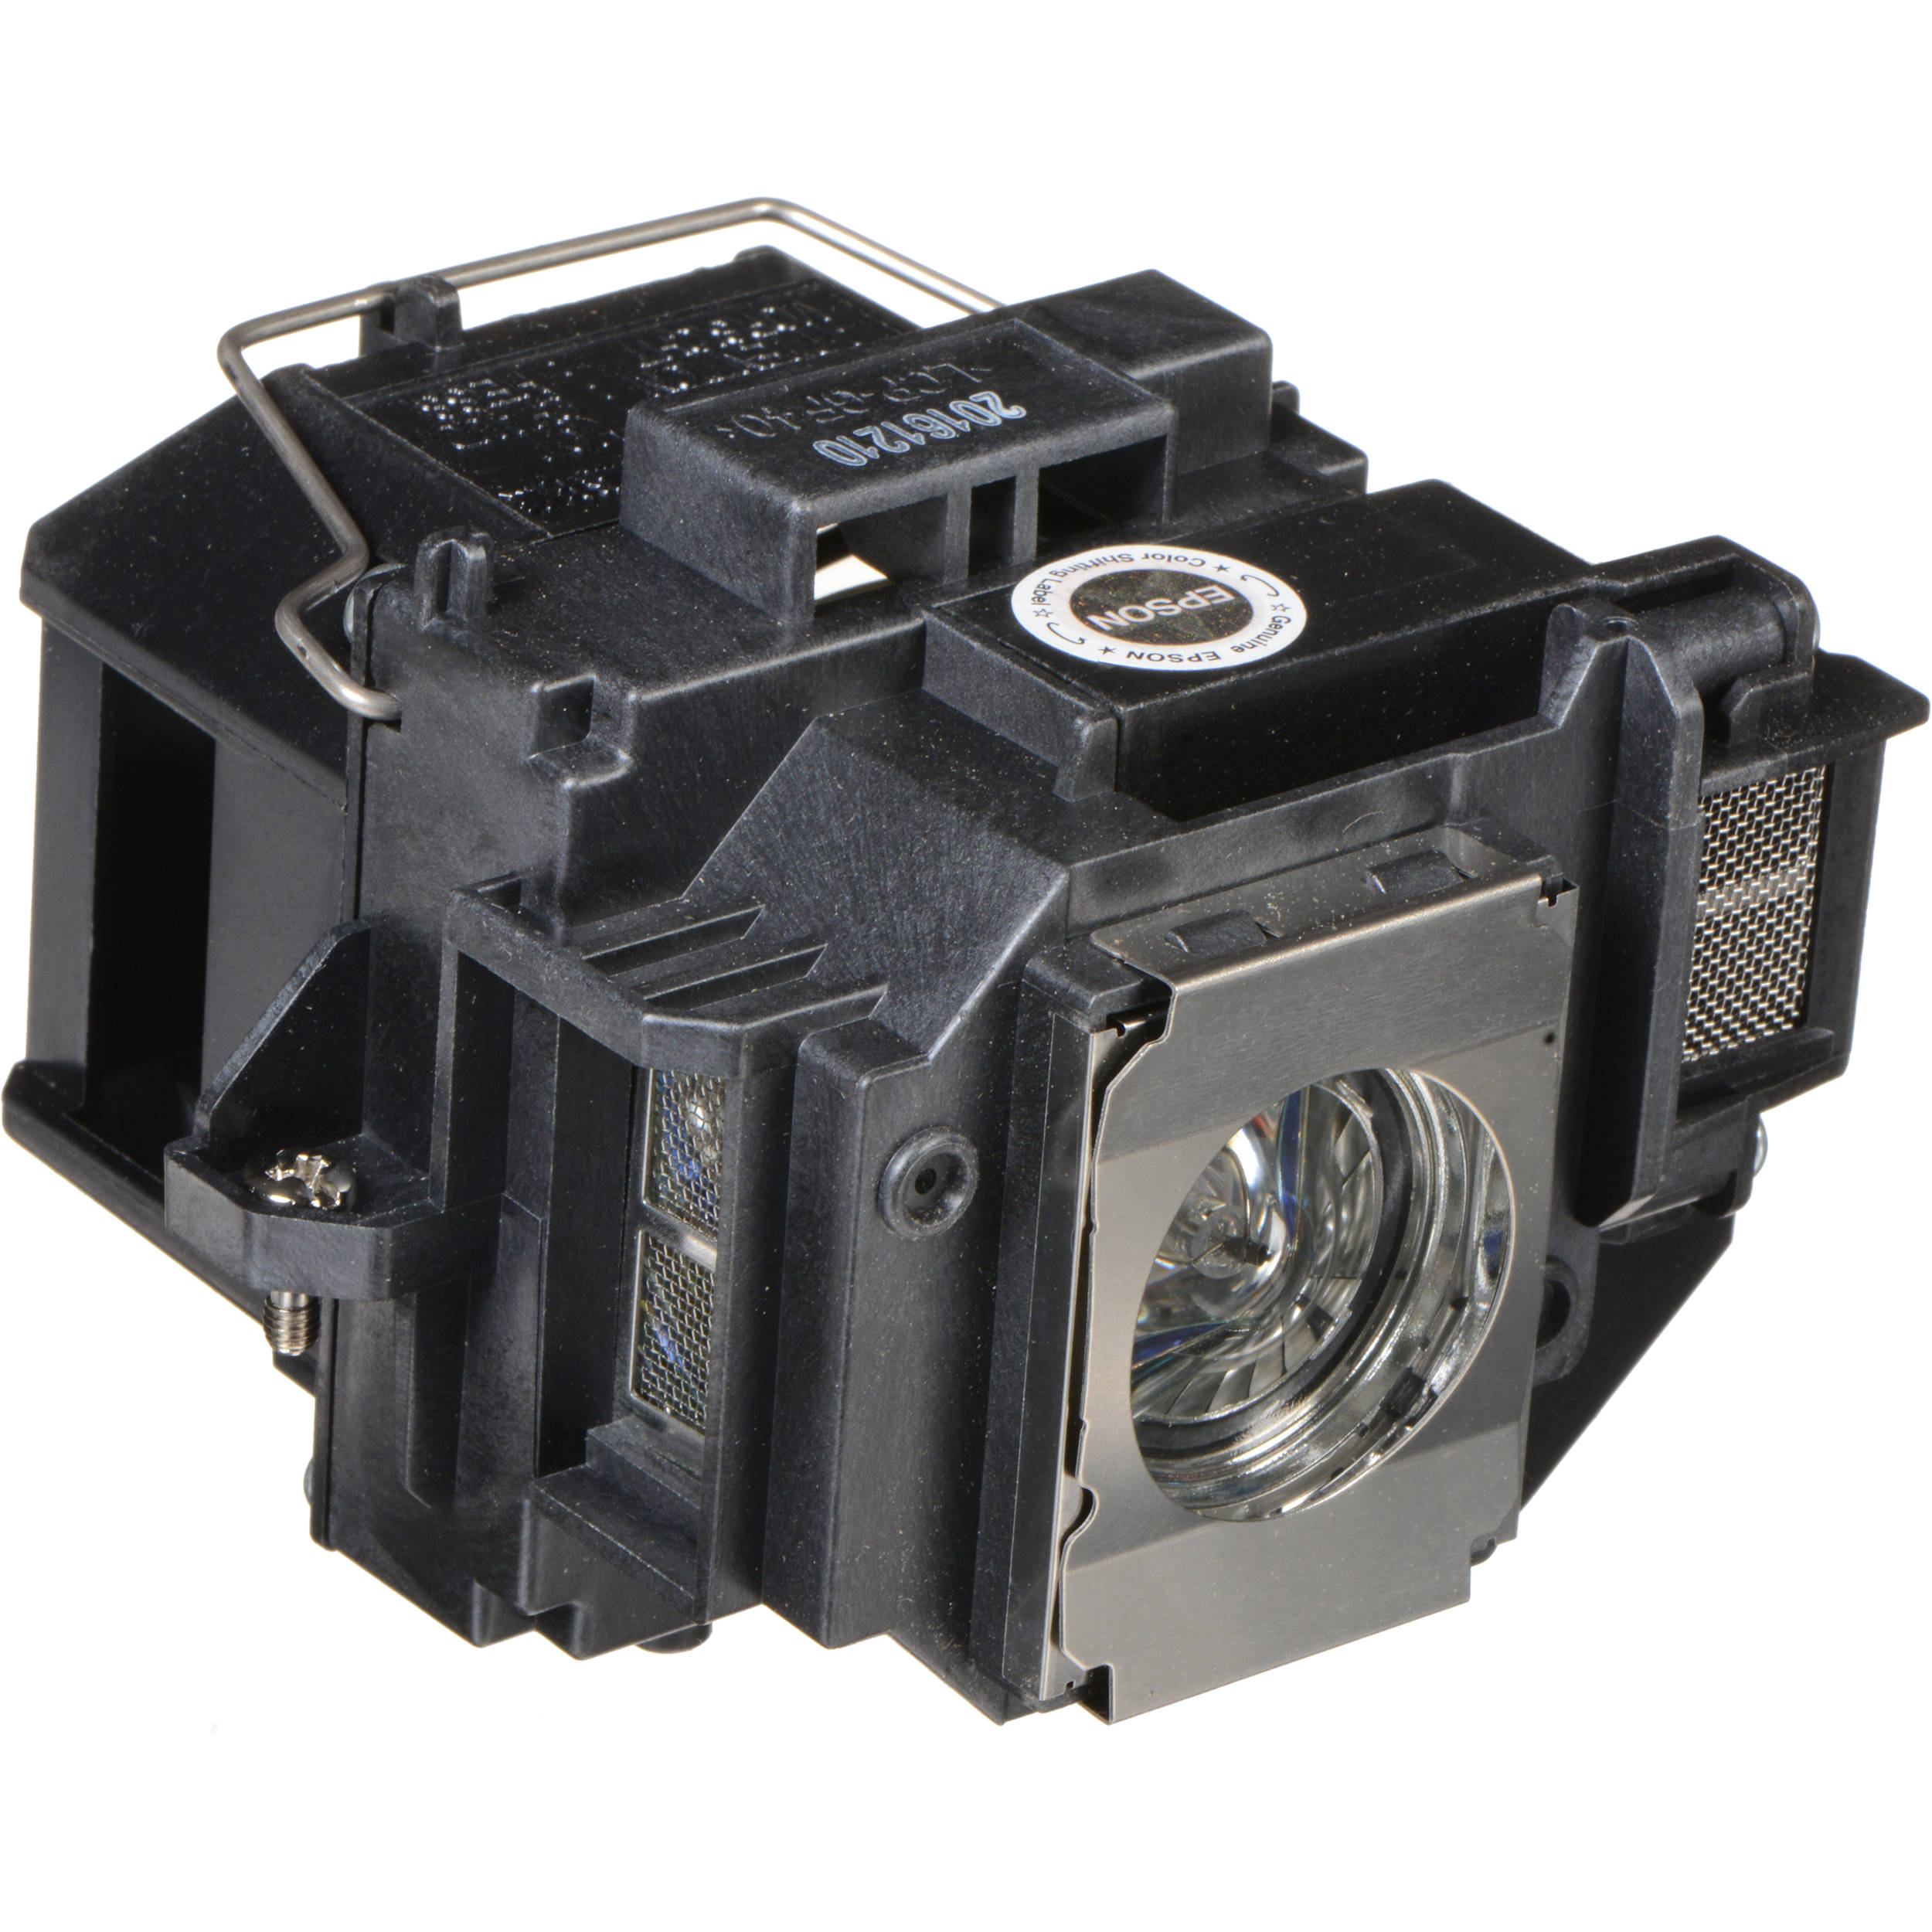 Epson V13H010L54 Projector Replacement Lamp V13H010L54 B&H